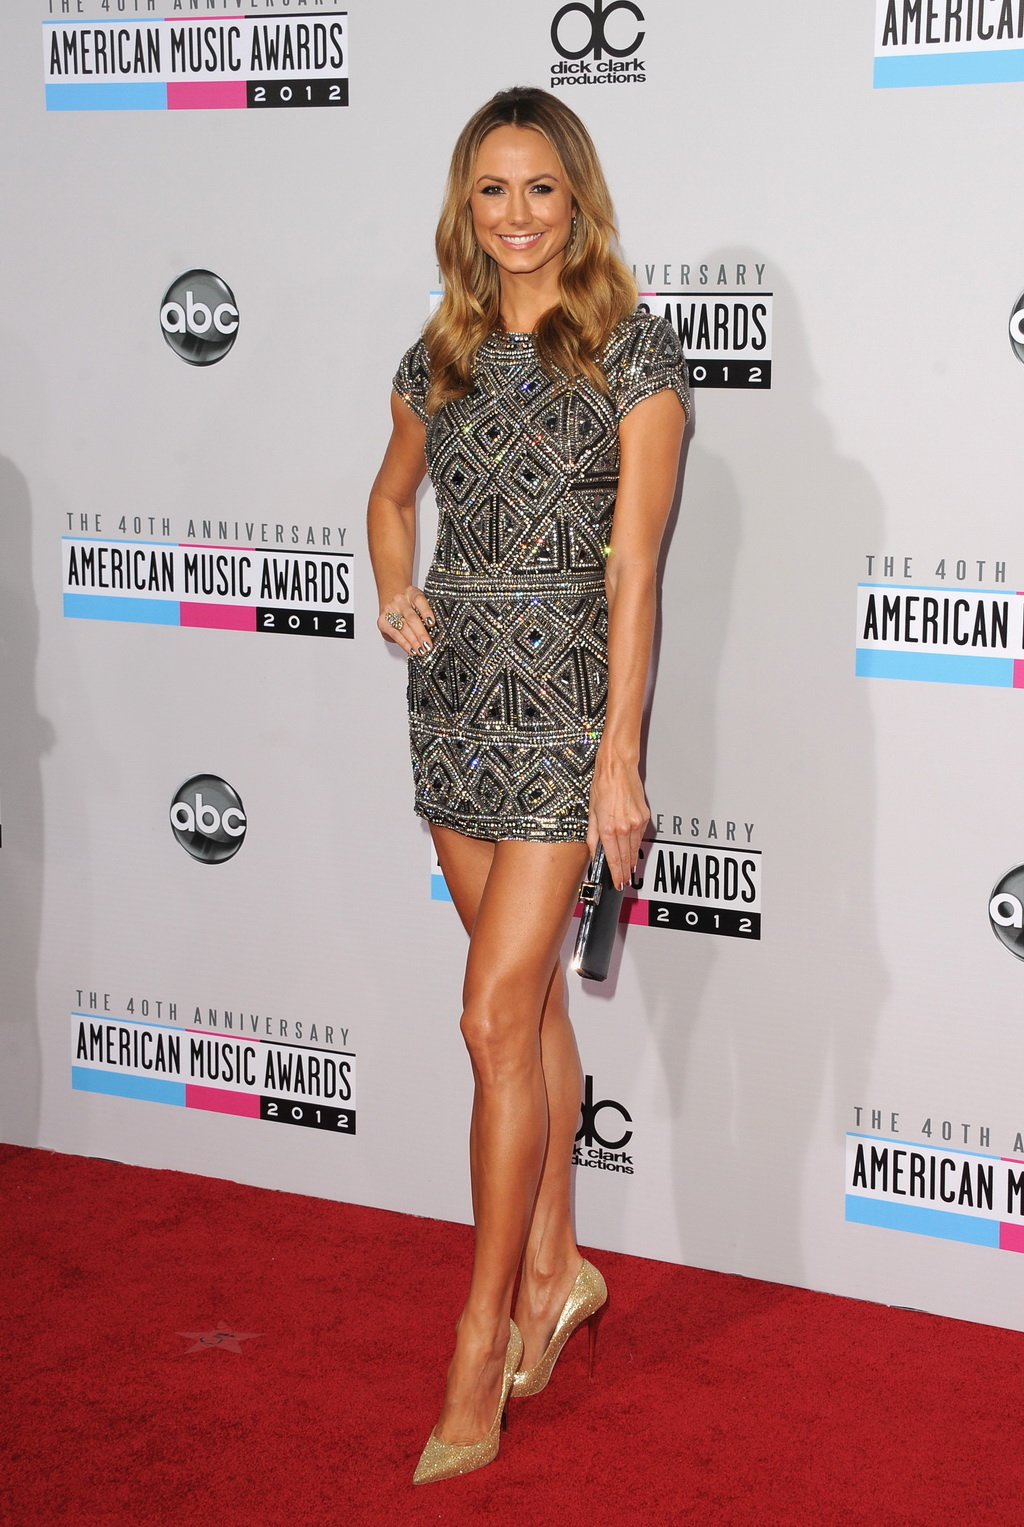 Stacy Keibler Looking Hot In Sey Mini Dress At American Music